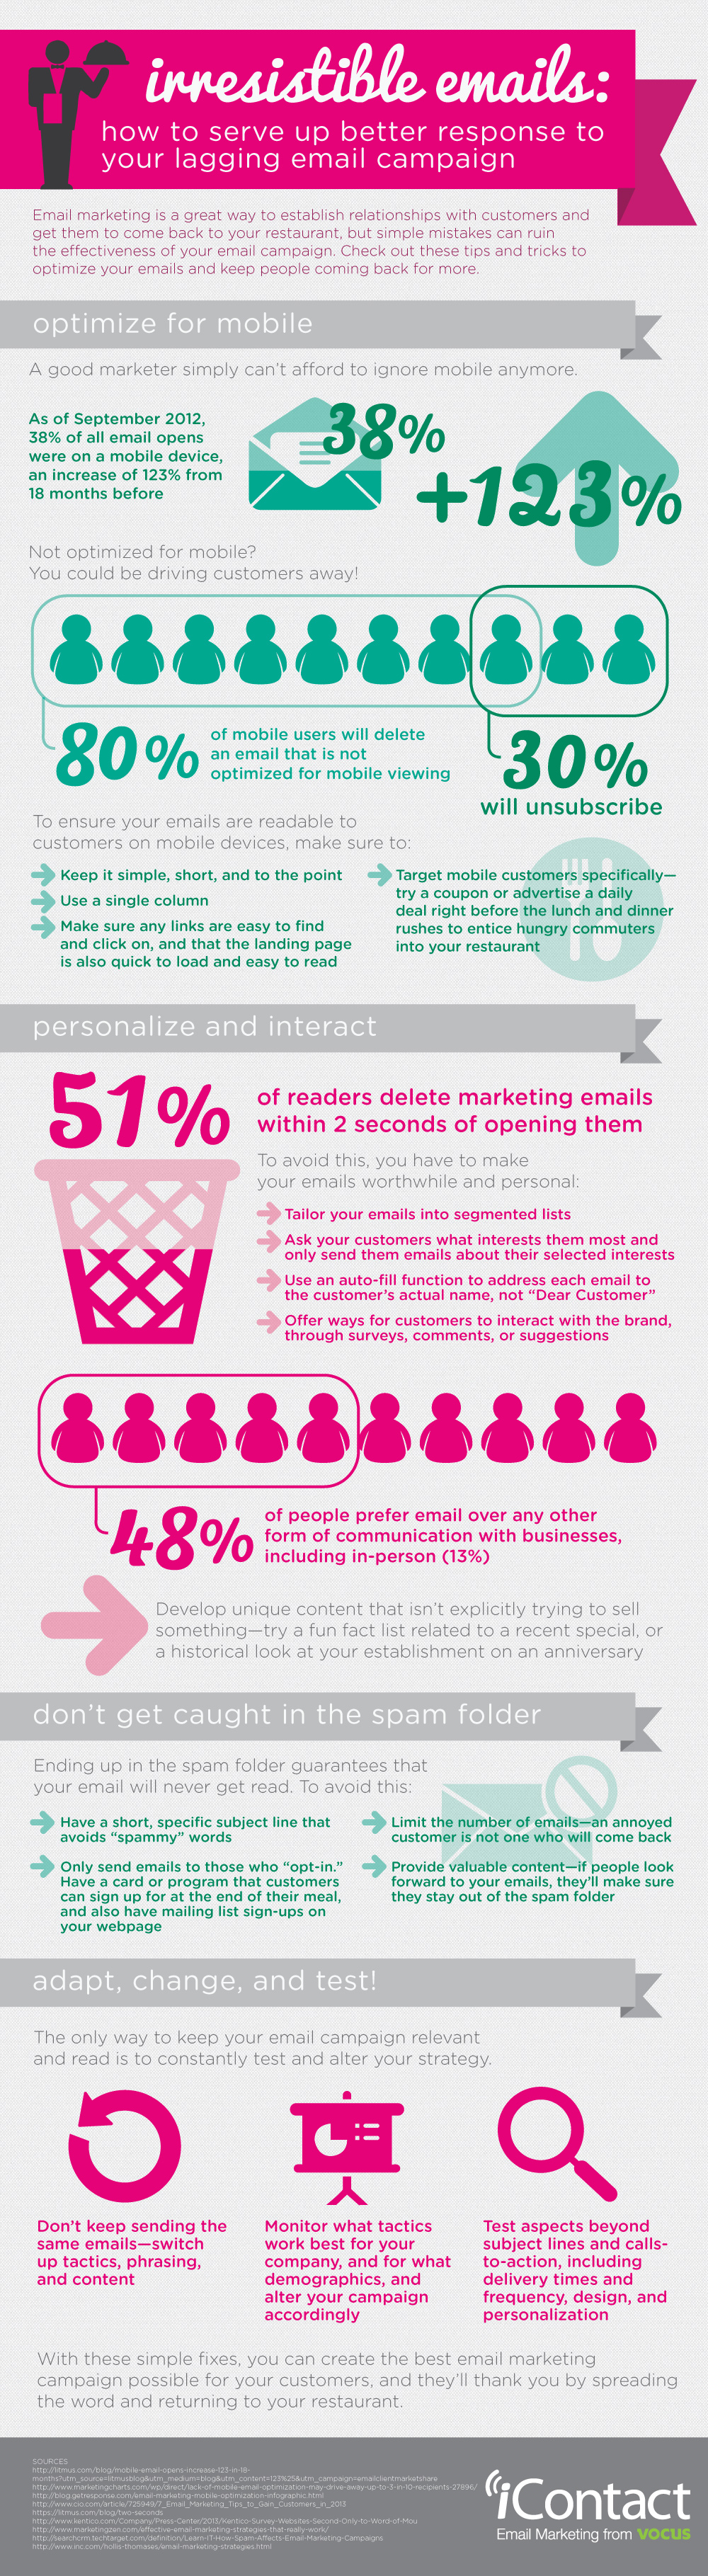 Email Marketing Best Practices Infographic | Sample Visualization